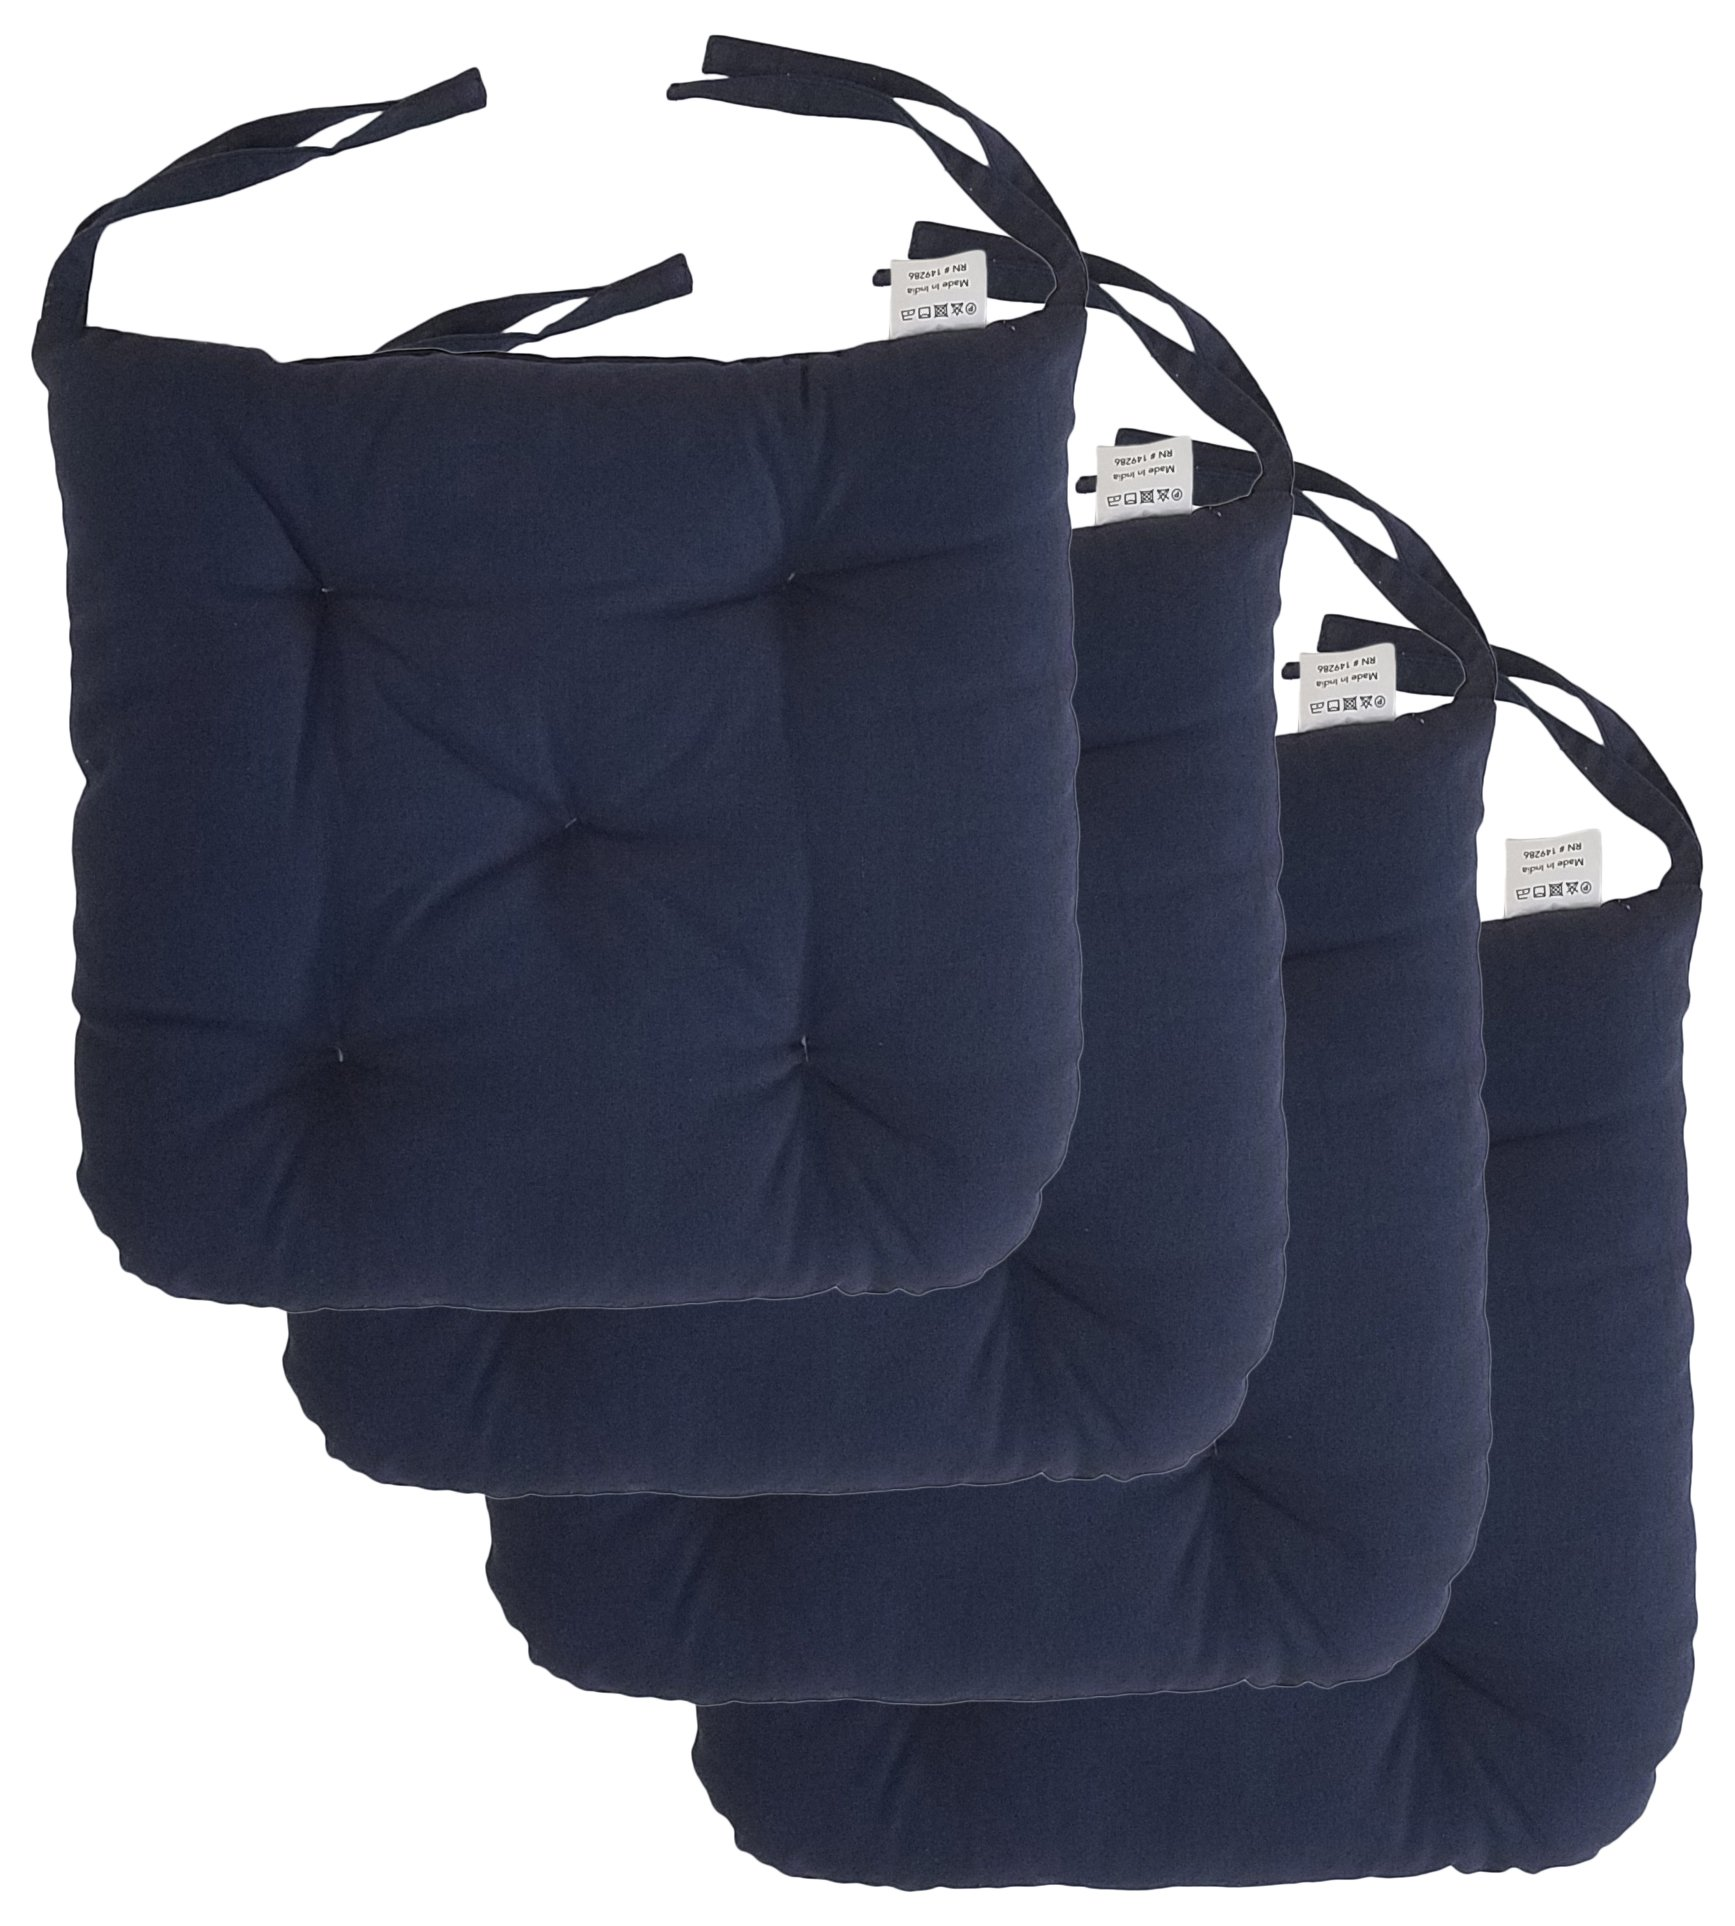 """Cottone 100% Cotton Chair Pads w/ Ties (Set of 4)   16"""" x 15"""" Round Square   Extra-Comfortable & Soft Seat Cushion   Ergonomic Pillows for Rocking, Dining, Patio, Camping, Kitchen Chairs & More (Navy)"""